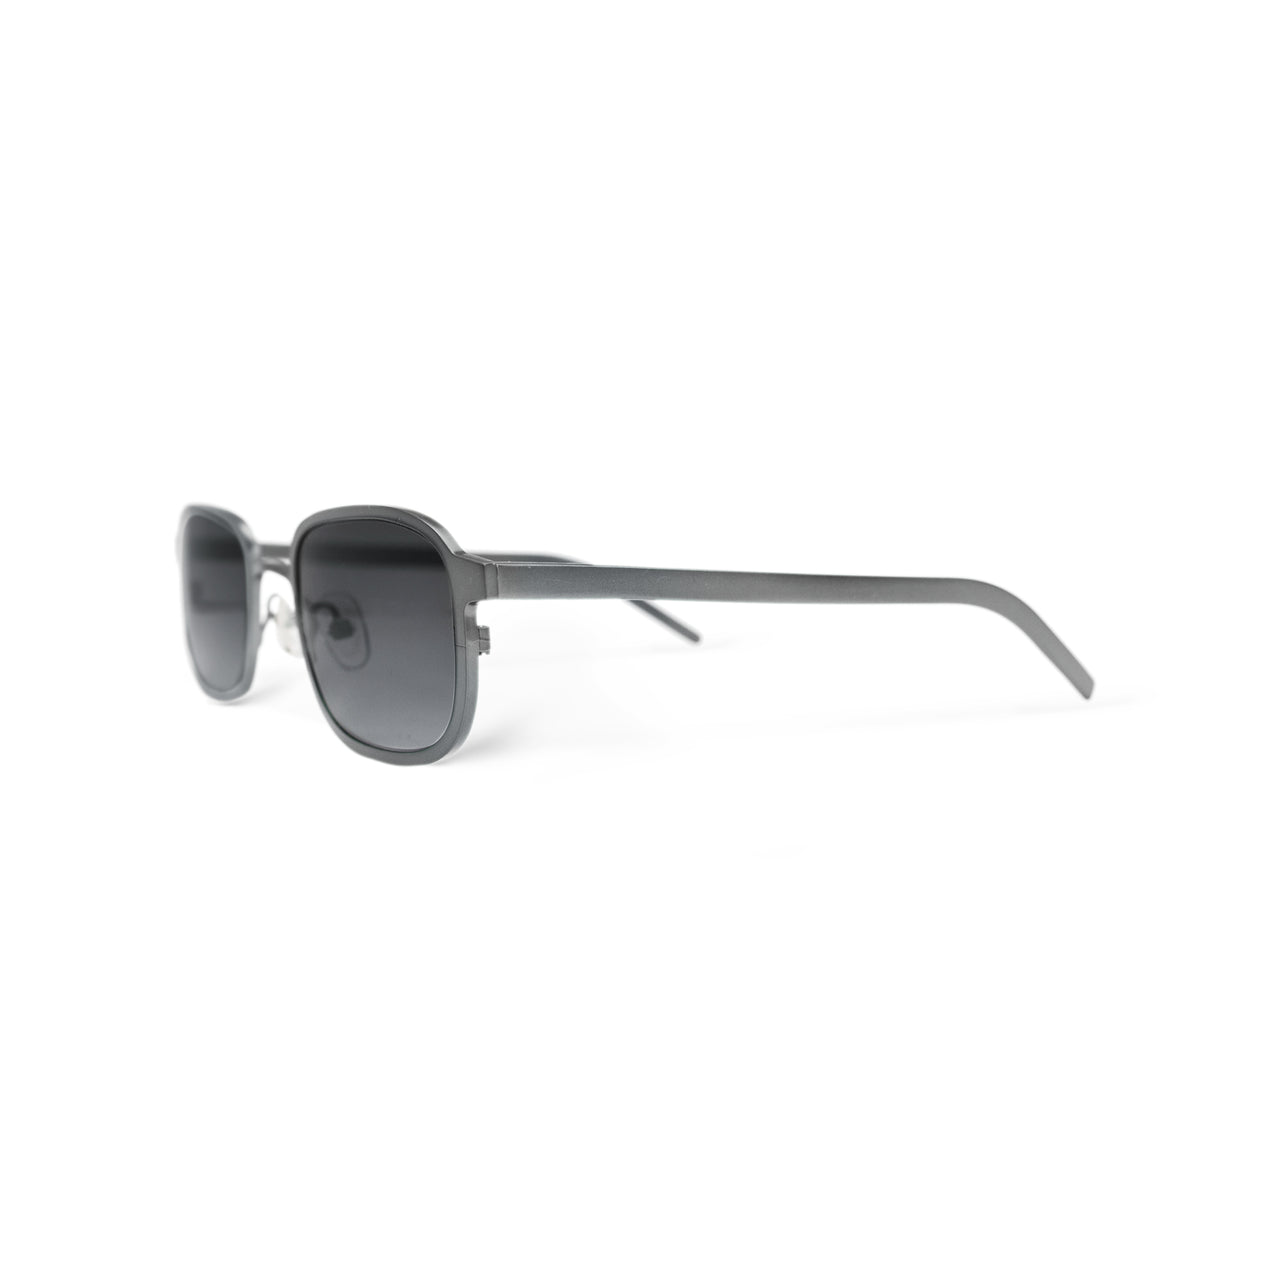 Metal. Brushed Silver. Smoke Lens. - BLYSZAK eyewear eyewear - eyewear, optical, sunglasses